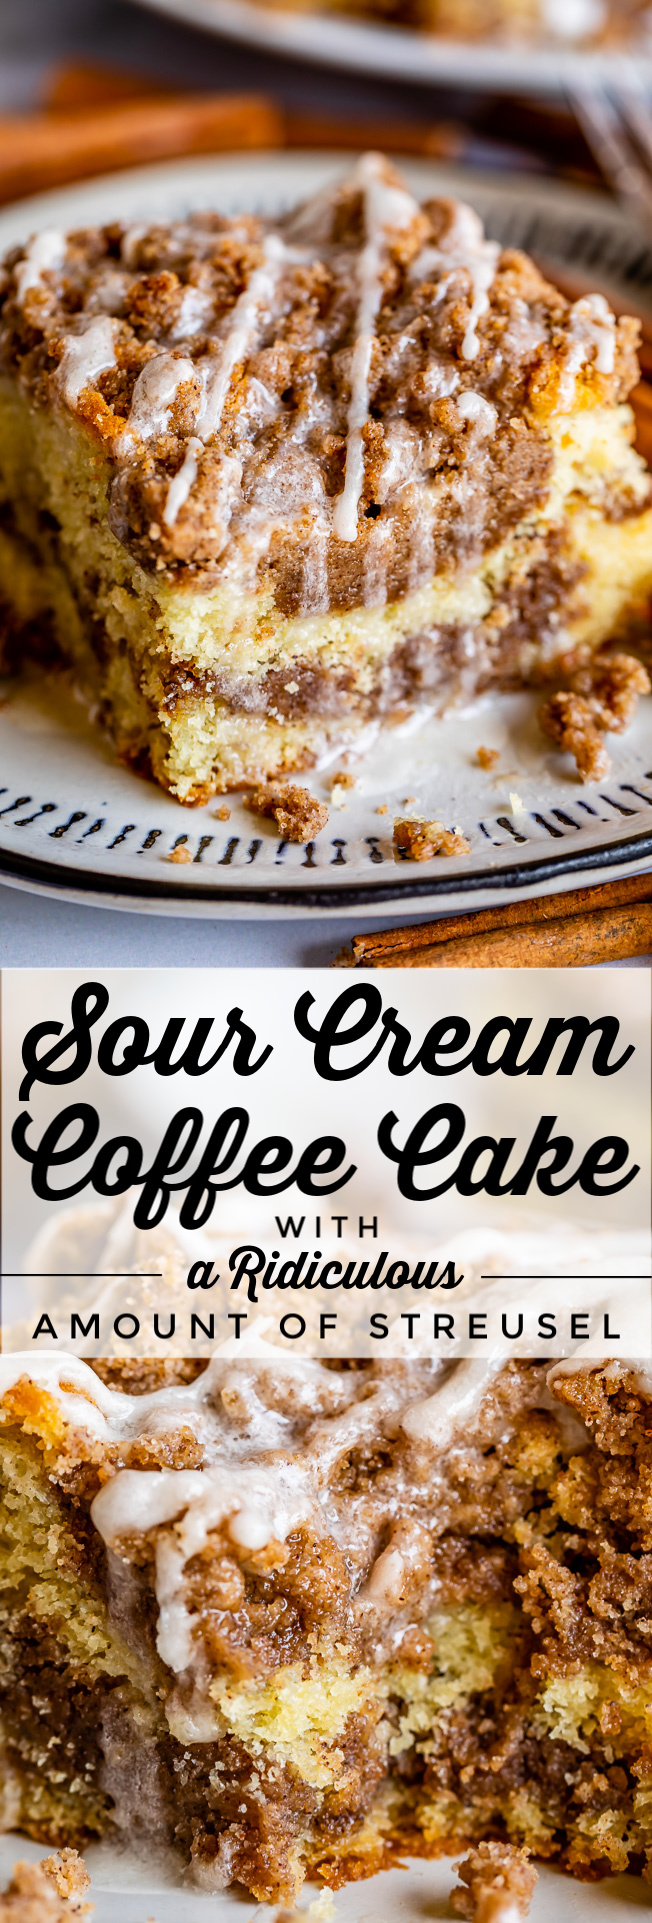 Sour Cream Coffee Cake With A Ridiculous Amount Of Streusel From The Food Charlatan This I Coffee Cake Recipes Easy Sour Cream Coffee Cake Sour Cream Recipes